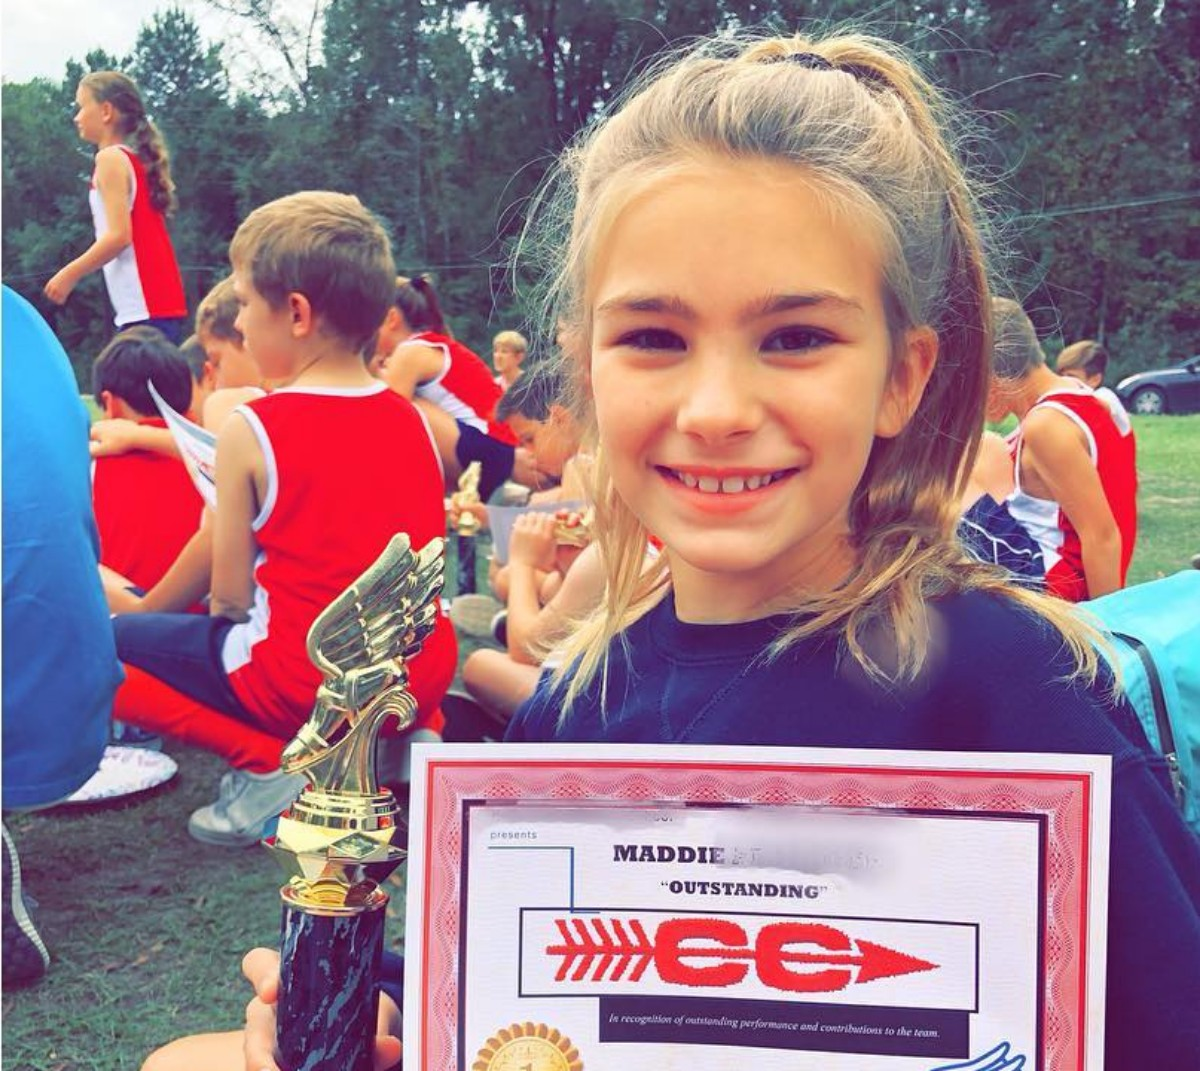 10 Fun Facts About Maddie Briann Aldridge Jamie Lynn Spears Daughter Feeling The Vibe Magazine Britney spears proved she was a fun auntie on tuesday when she was seen doing acrobatics with her nieces, maddie briann aldridge, 11, and ivey joan watson, one. 10 fun facts about maddie briann